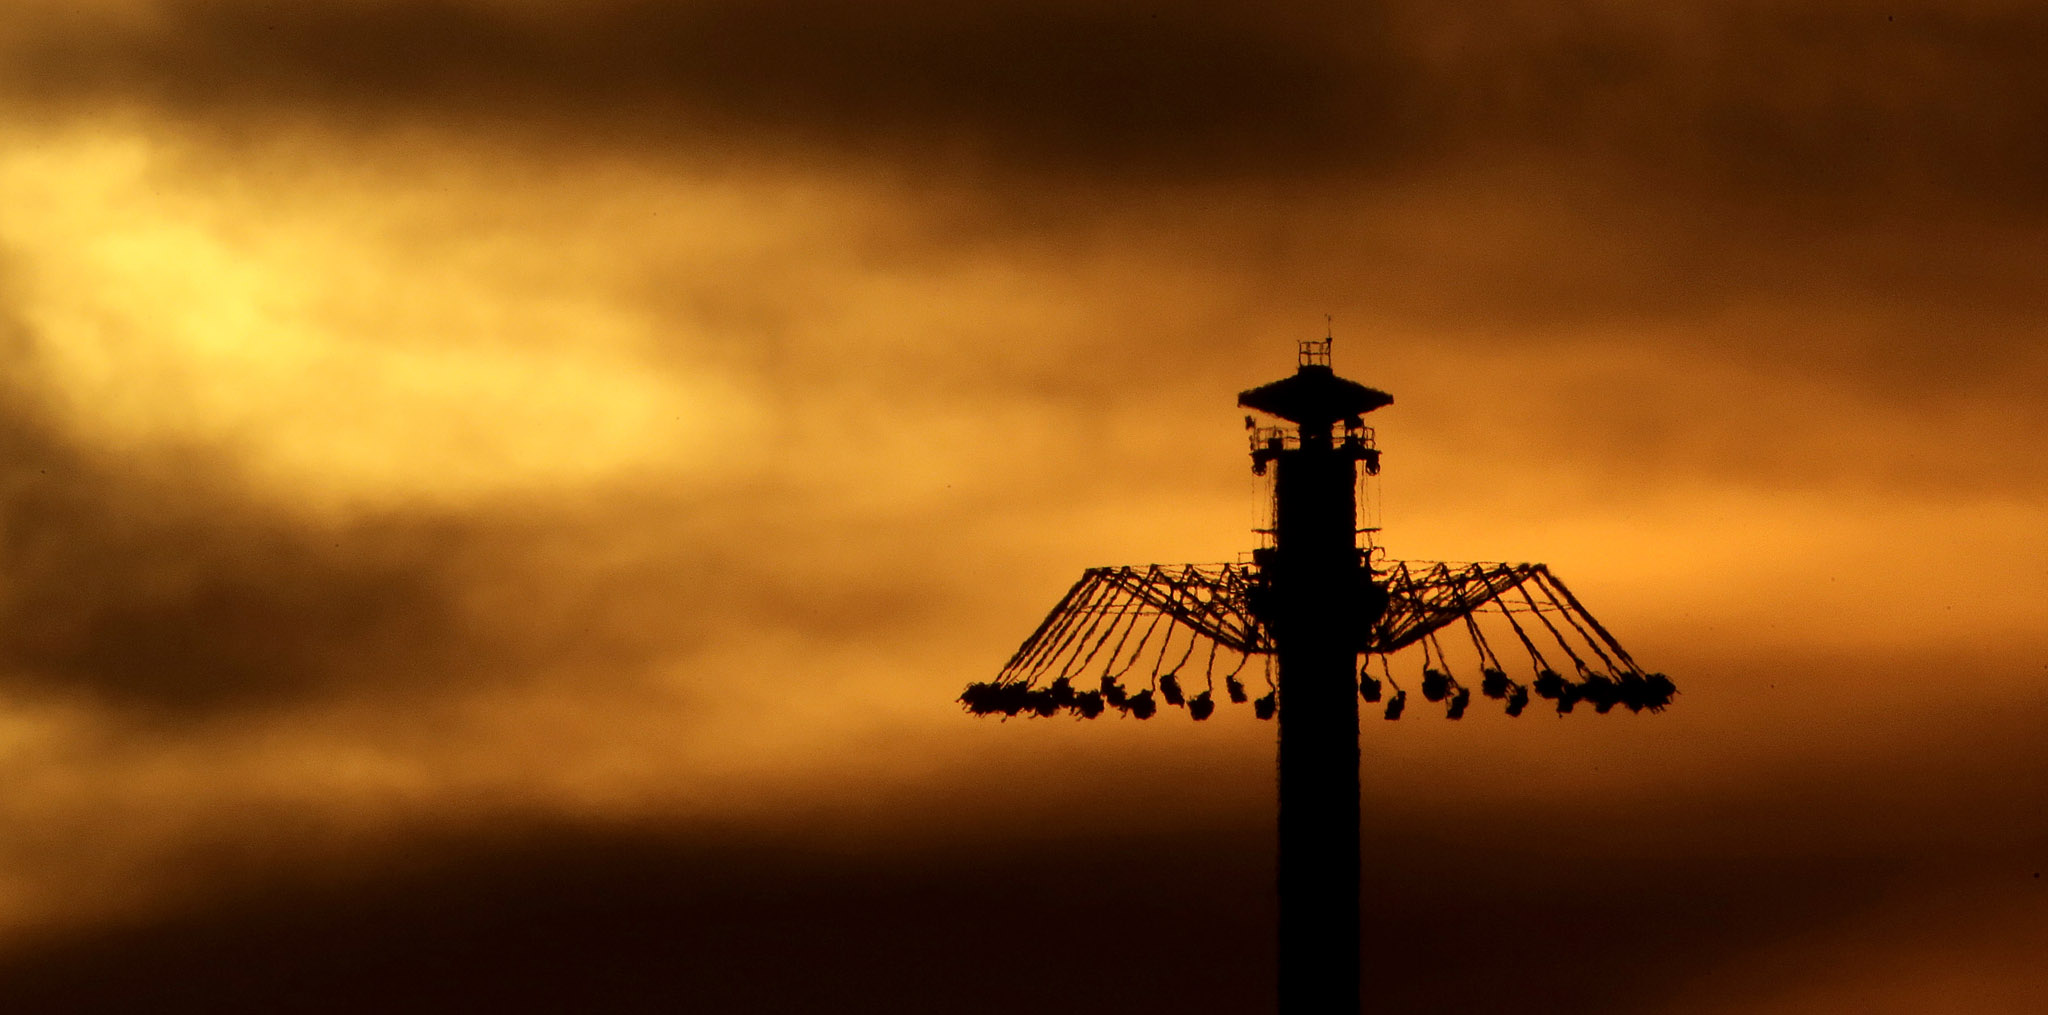 People riding an attraction are silhouetted as the sun sets beyond Worlds of Fun amusement park in Kansas City, Mo